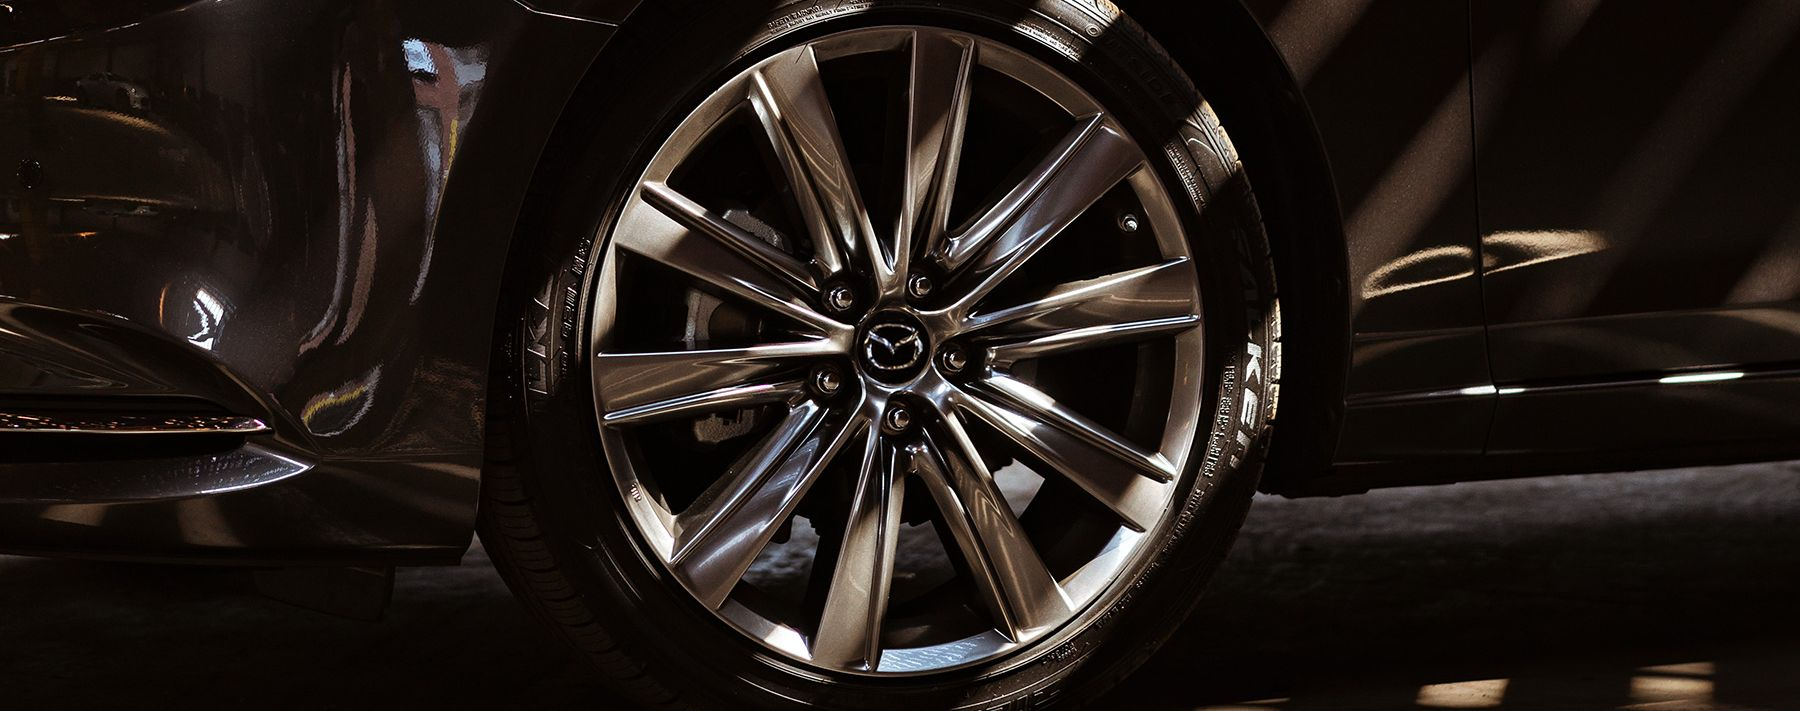 Stylish Wheels of the 2019 Mazda6